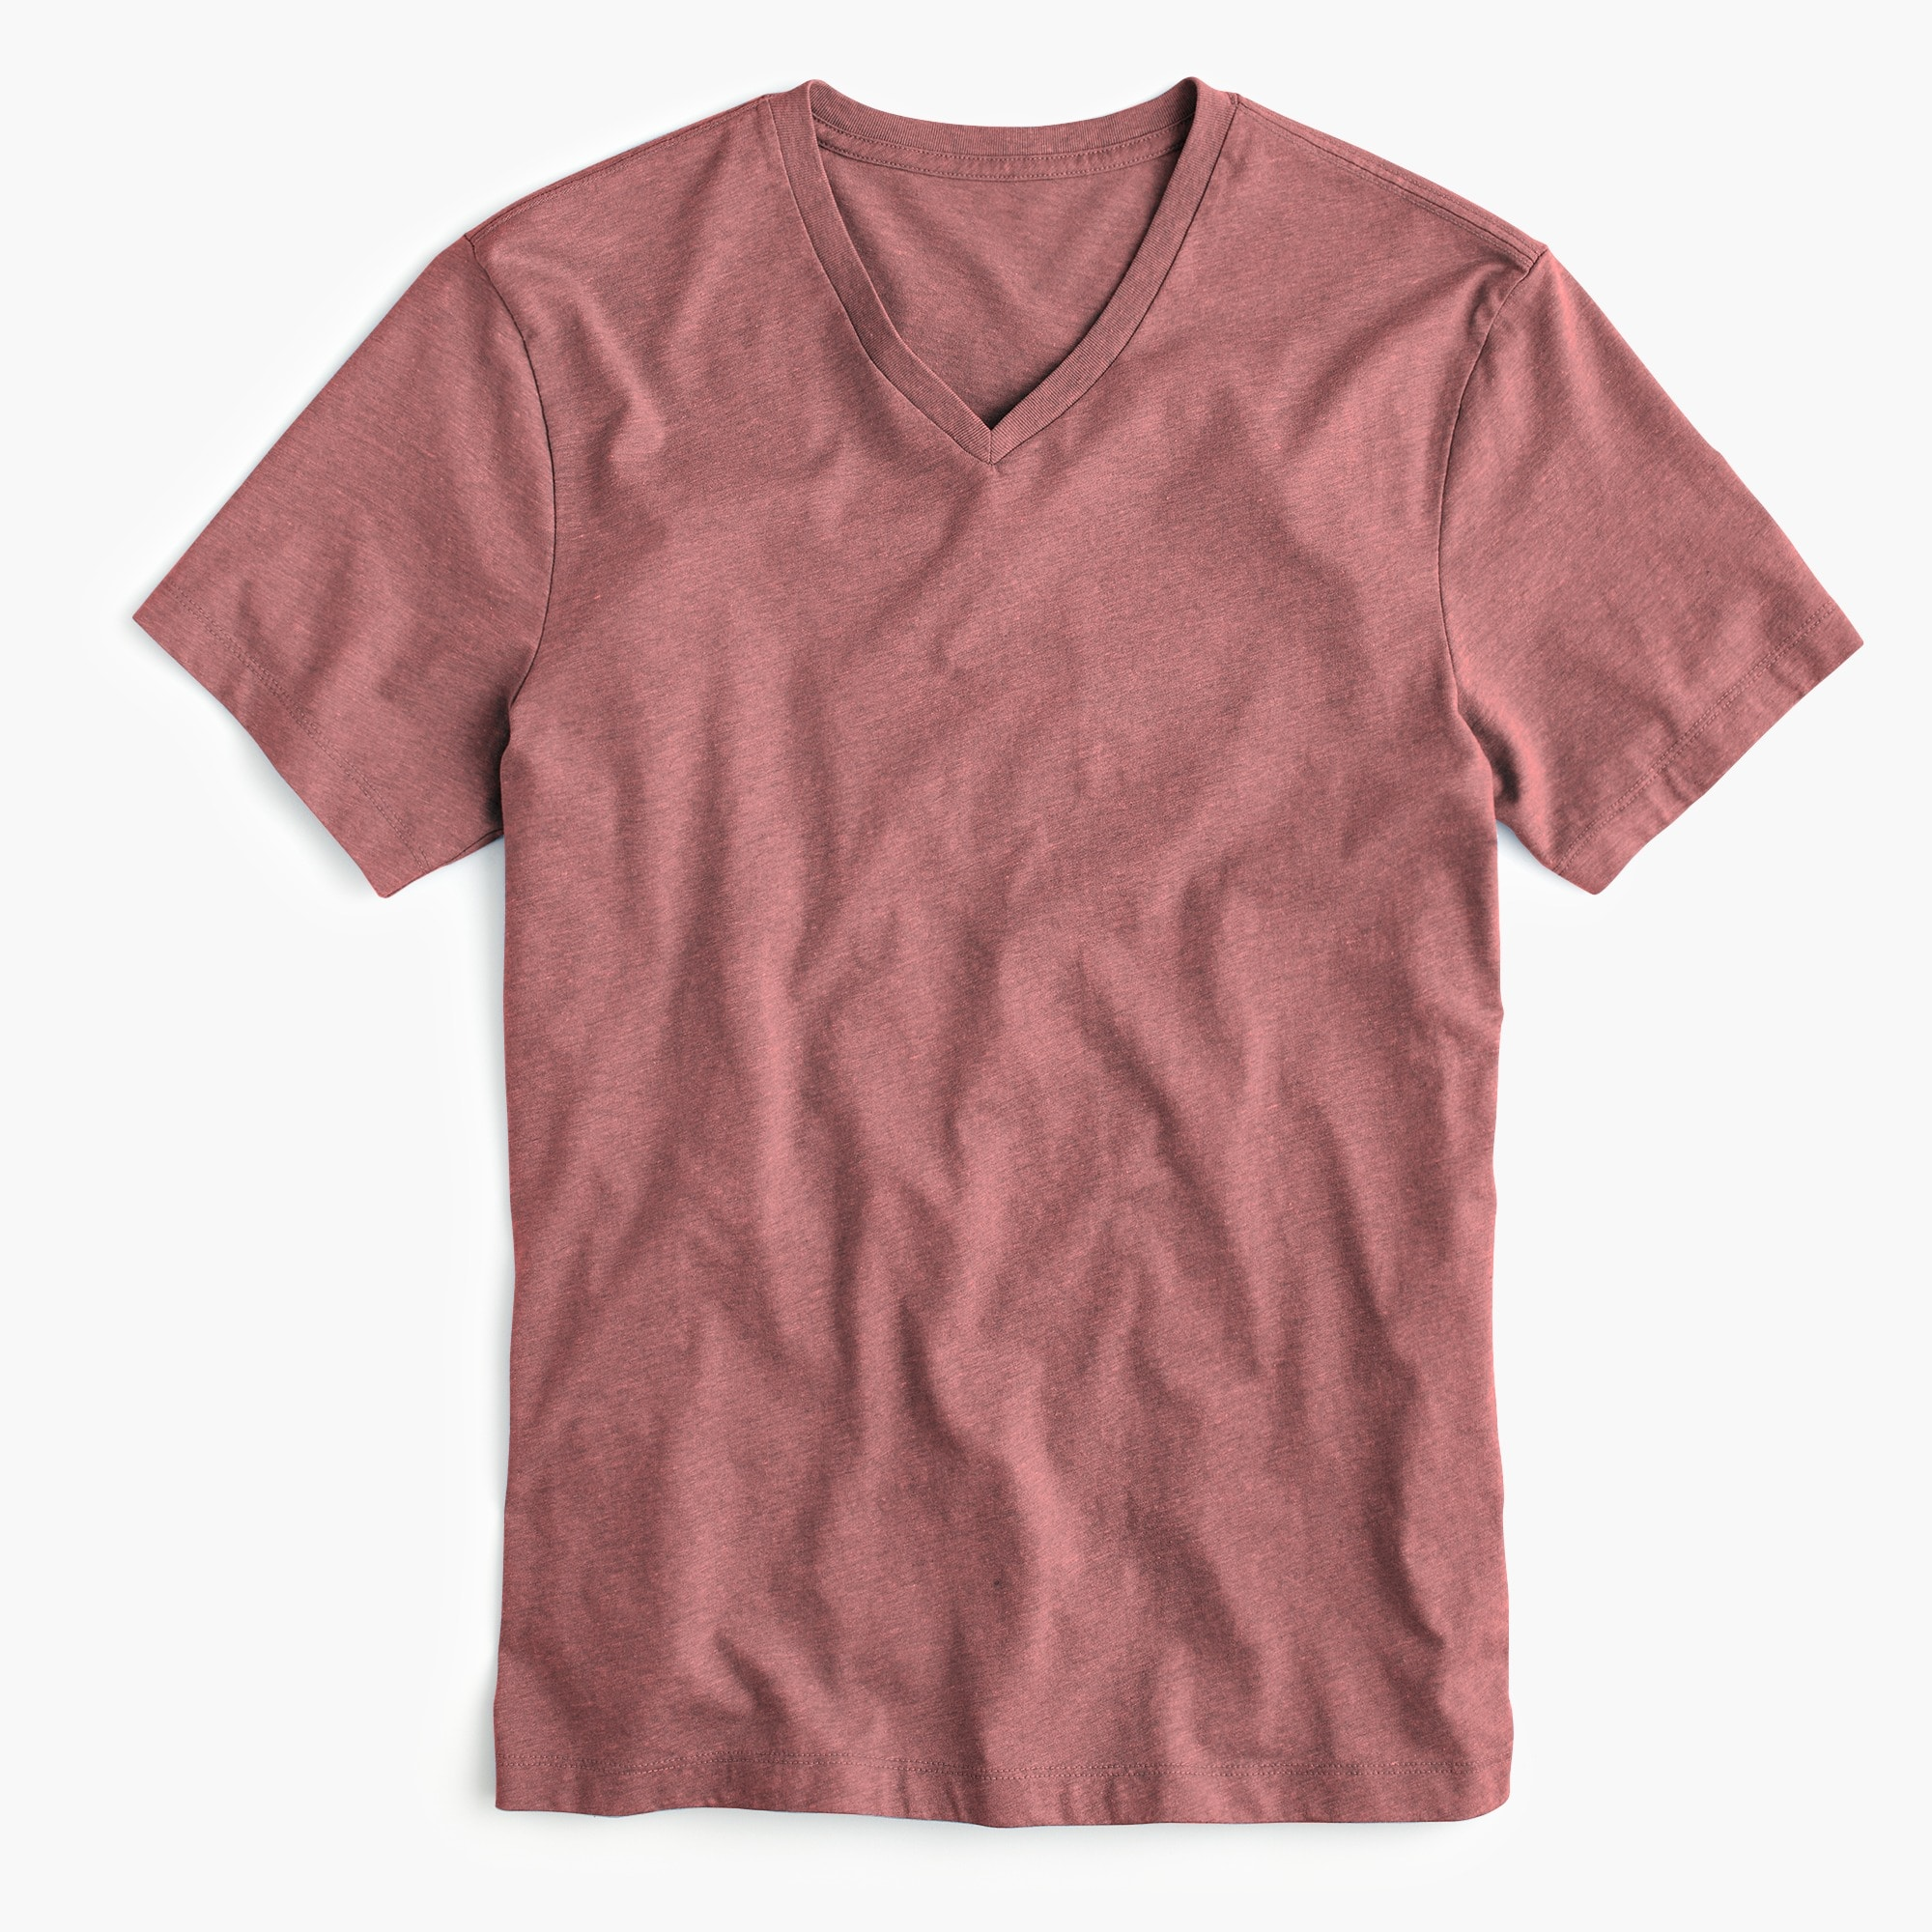 mens Tall J.Crew Mercantile Broken-in V-neck heather T-shirt